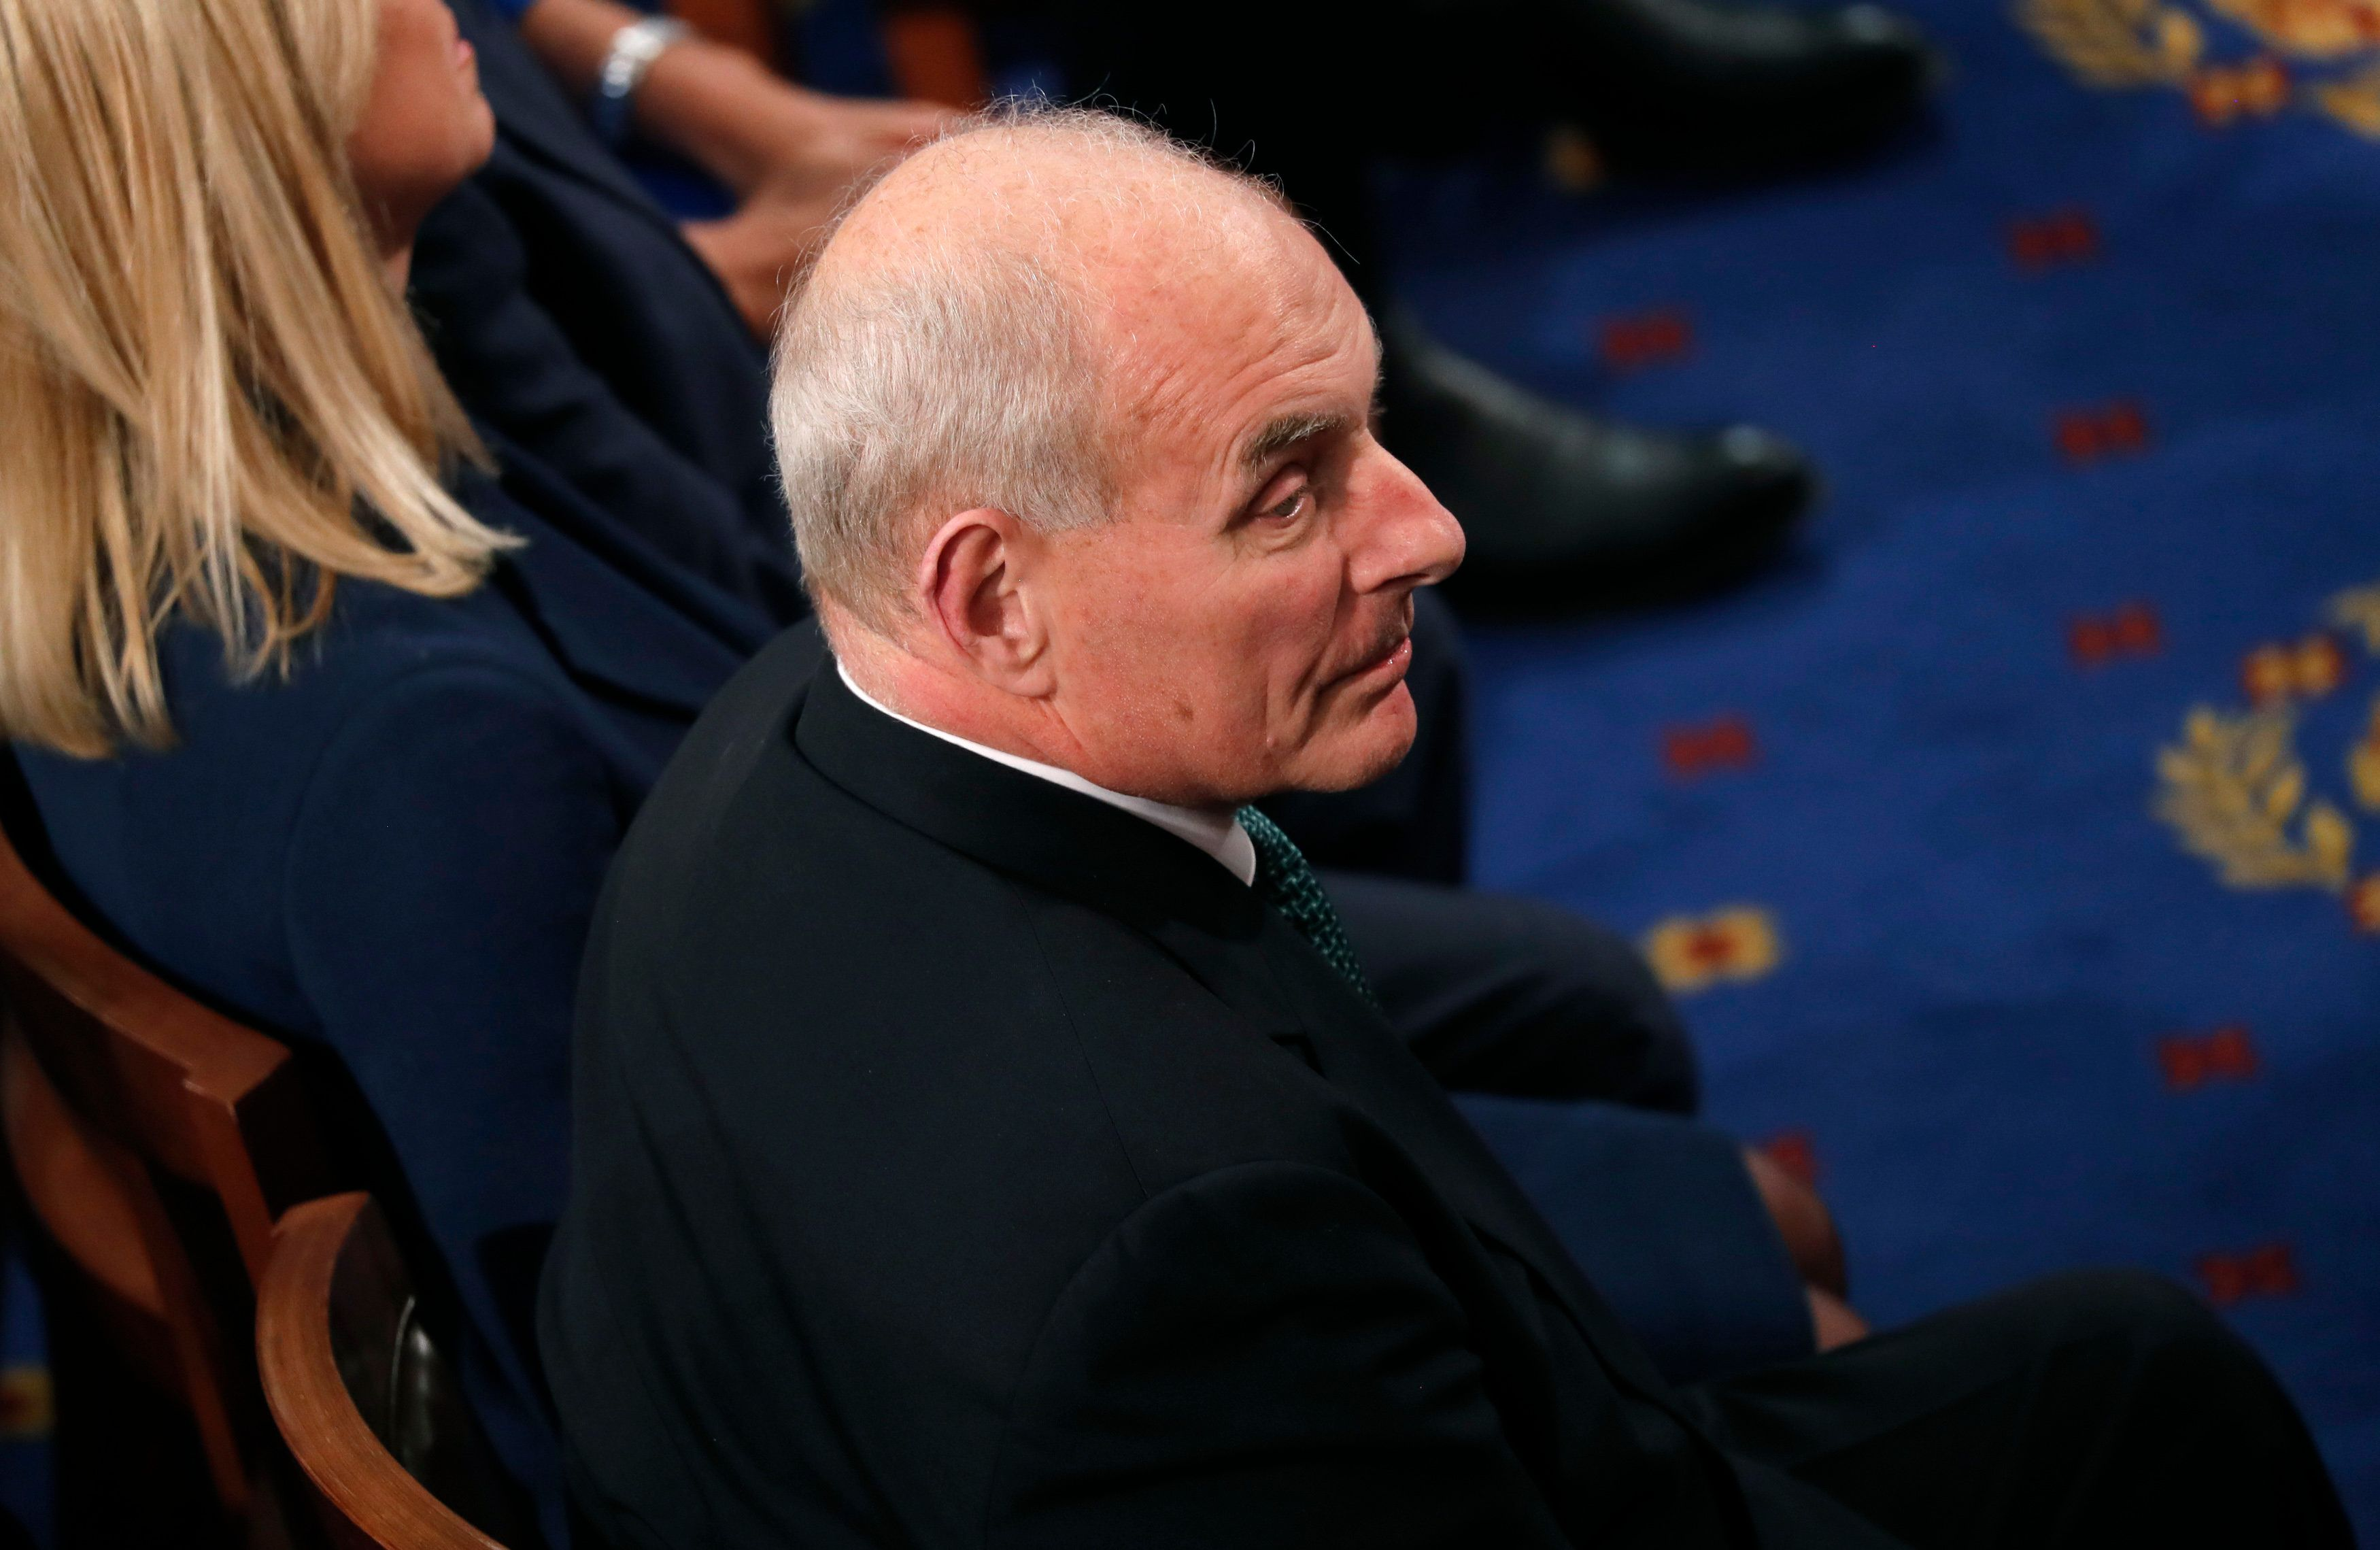 Chief of Staff General John Kelly listens as U.S. President Donald Trump delivers his State of the Union address to a joint session of the U.S. Congress on Capitol Hill in Washington, U.S. January 30, 2018. REUTERS/Jonathan Ernst